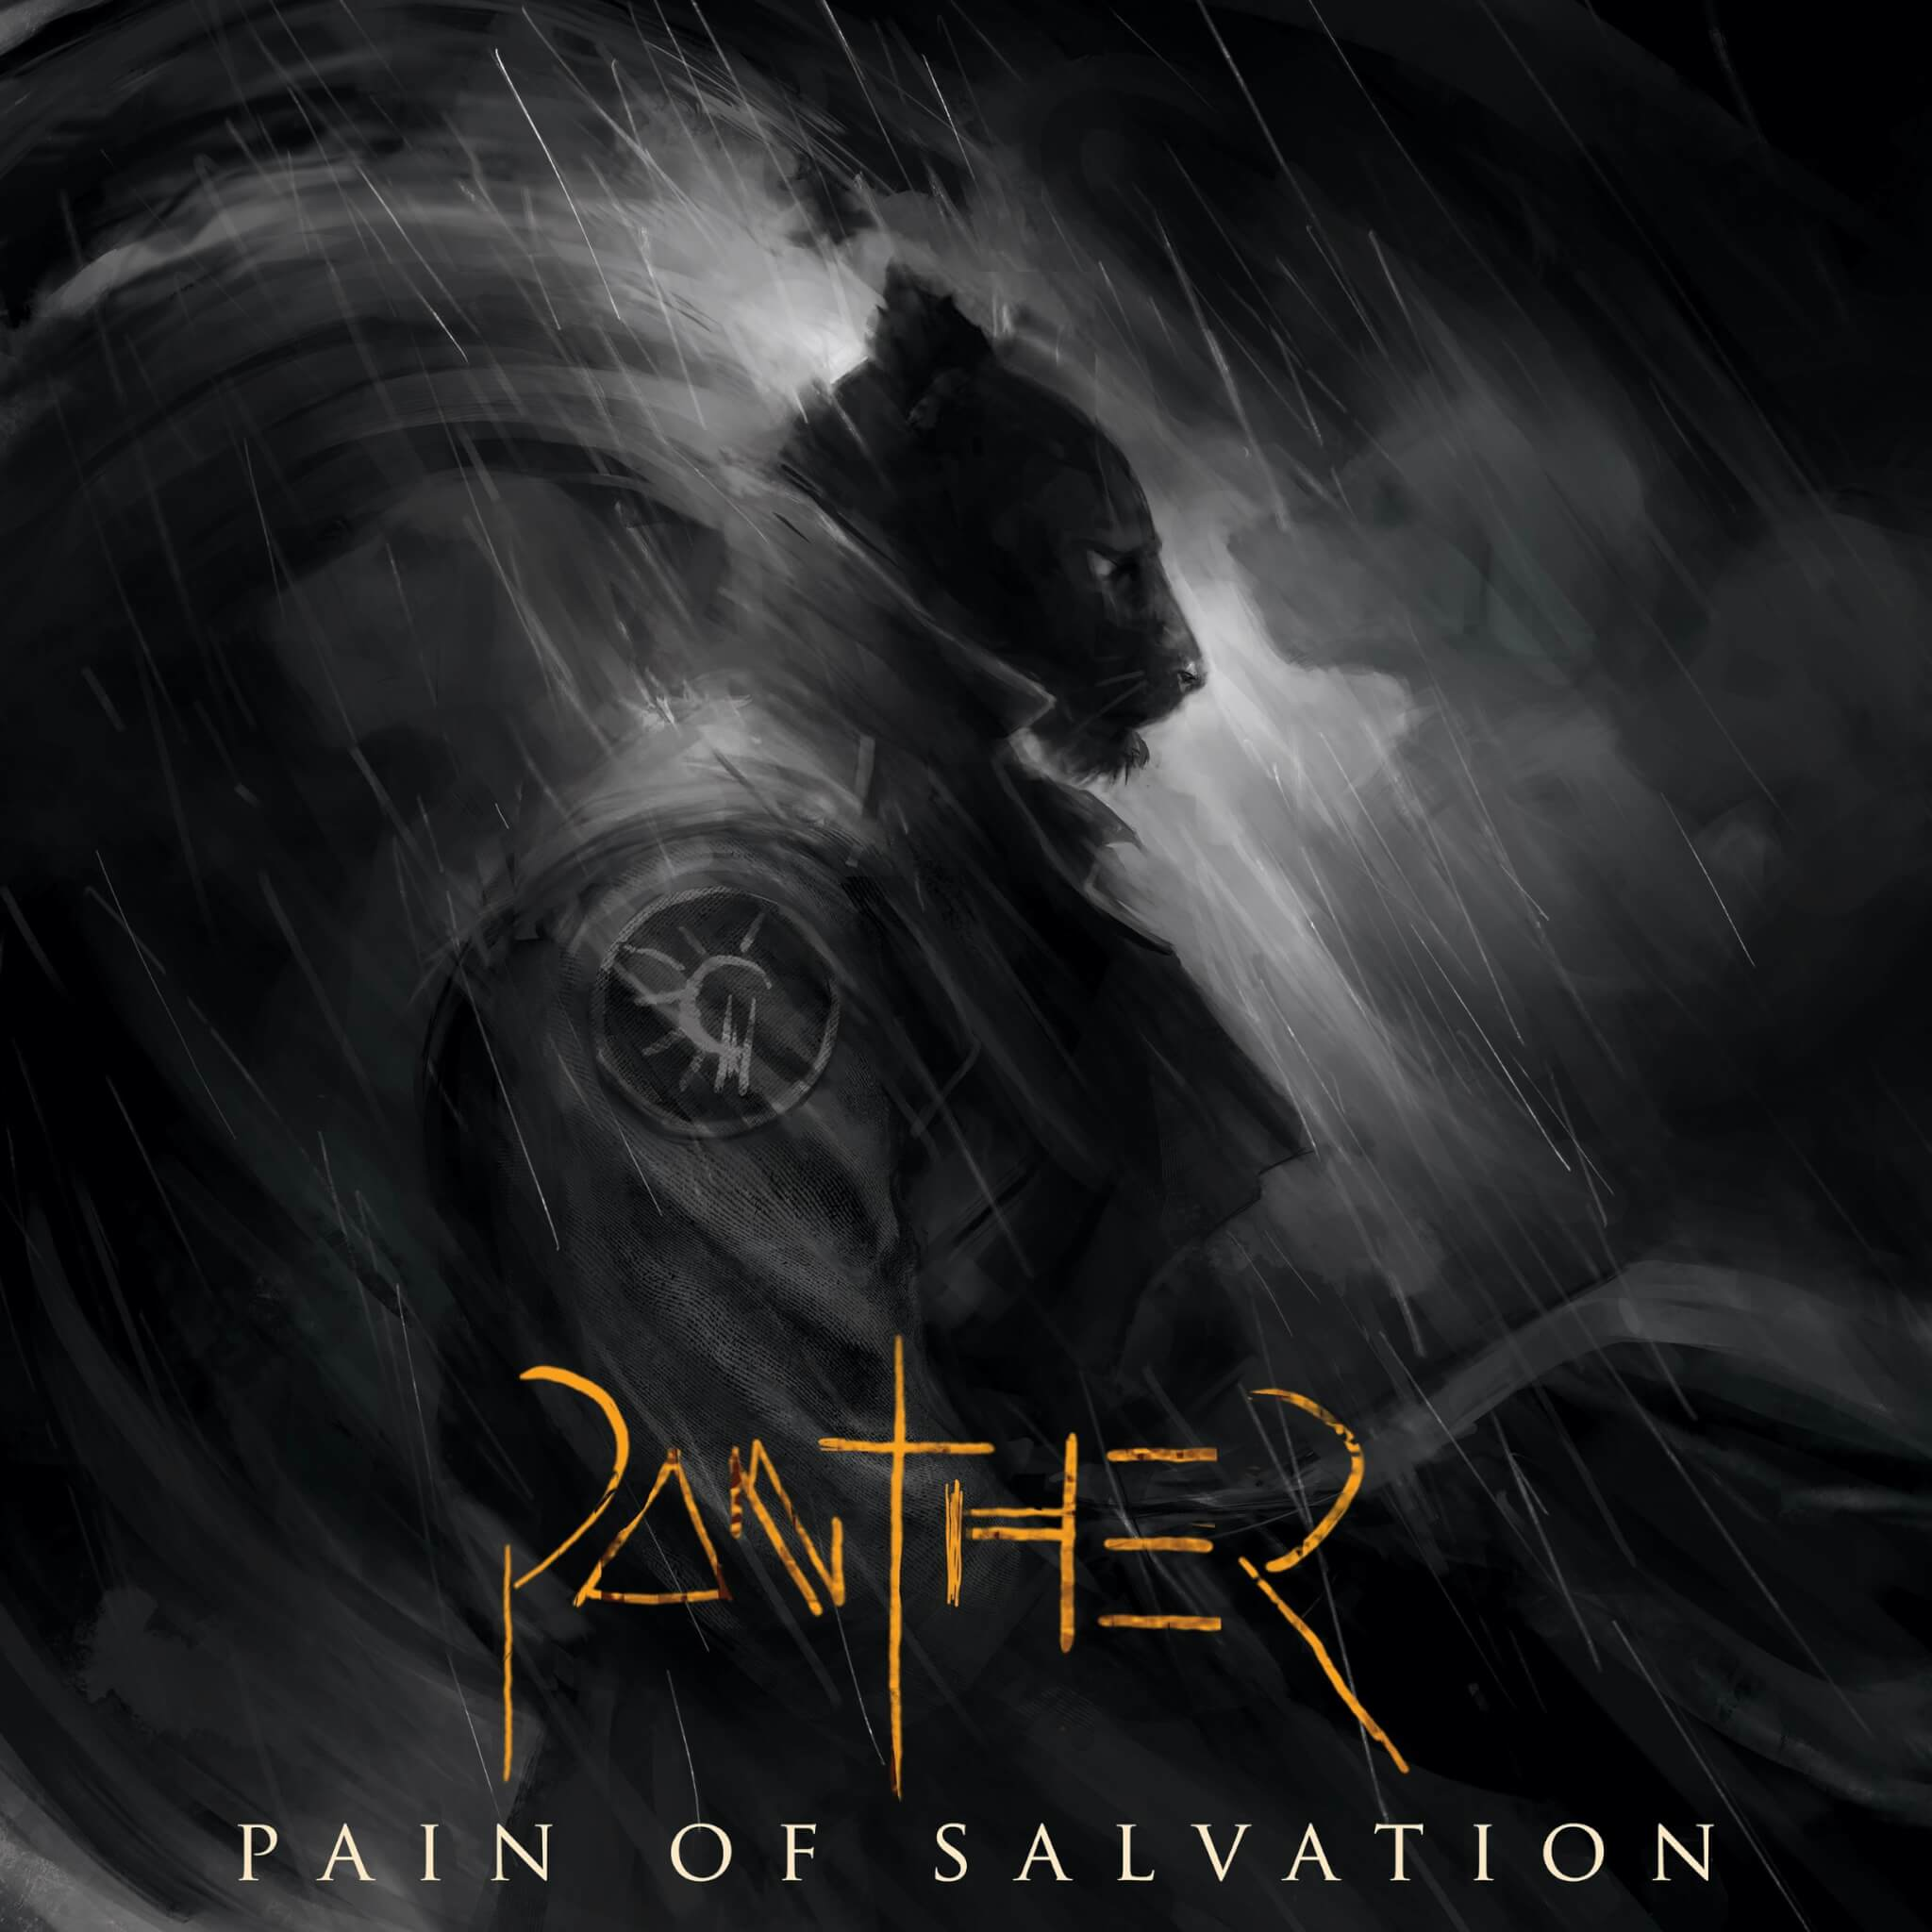 Pain of Salvation: Panther